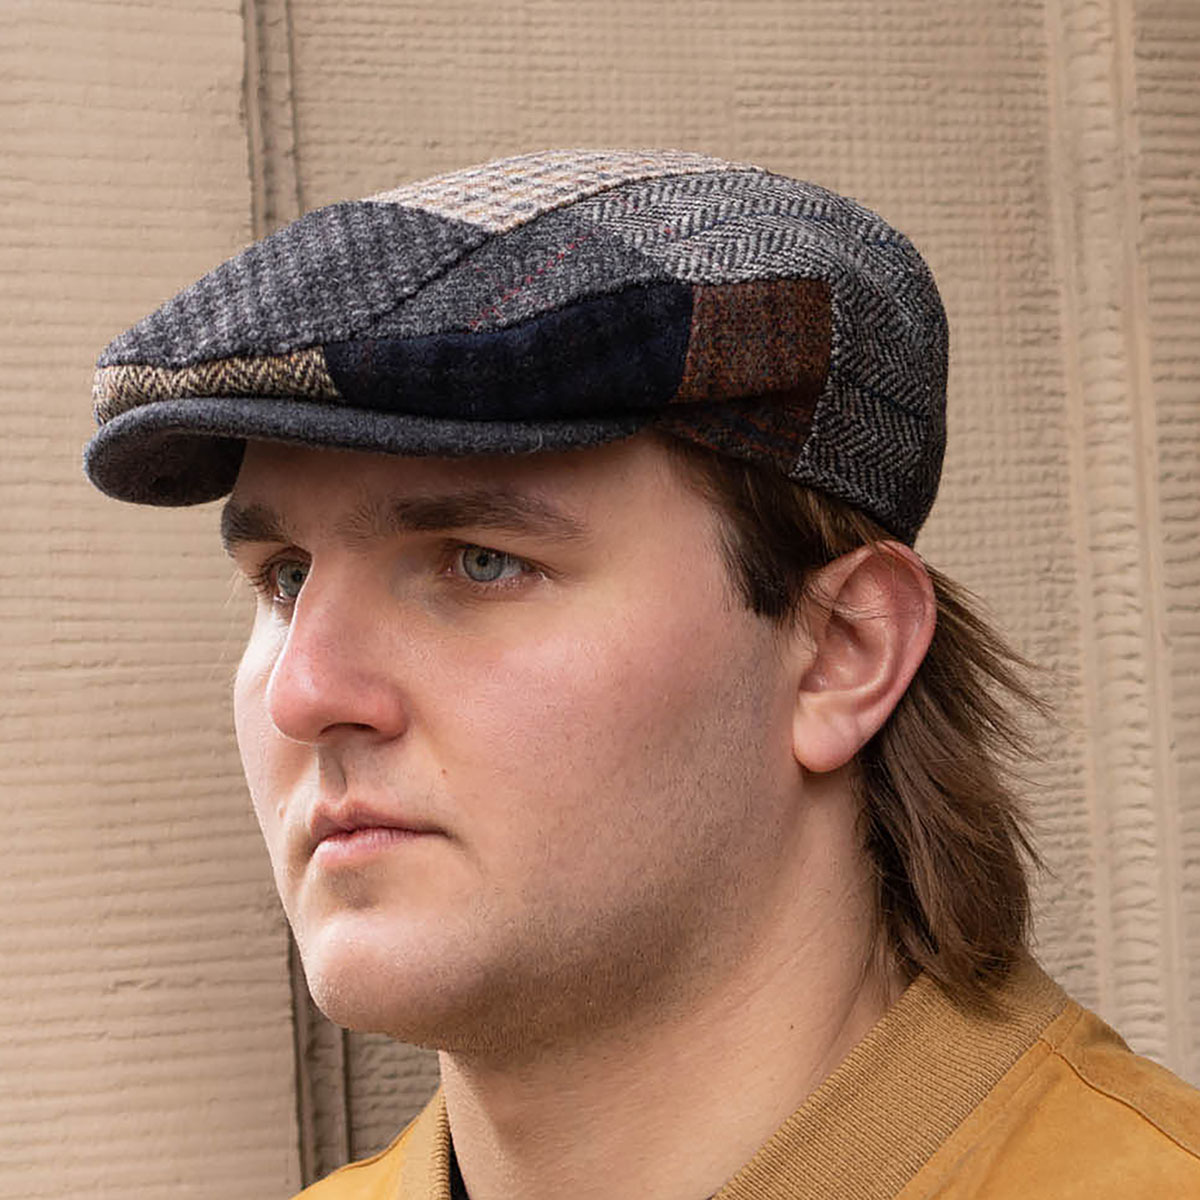 Wool patchwork flat cap Gatsby dai jeff ivy league derby paddy driving duffer plaid hat